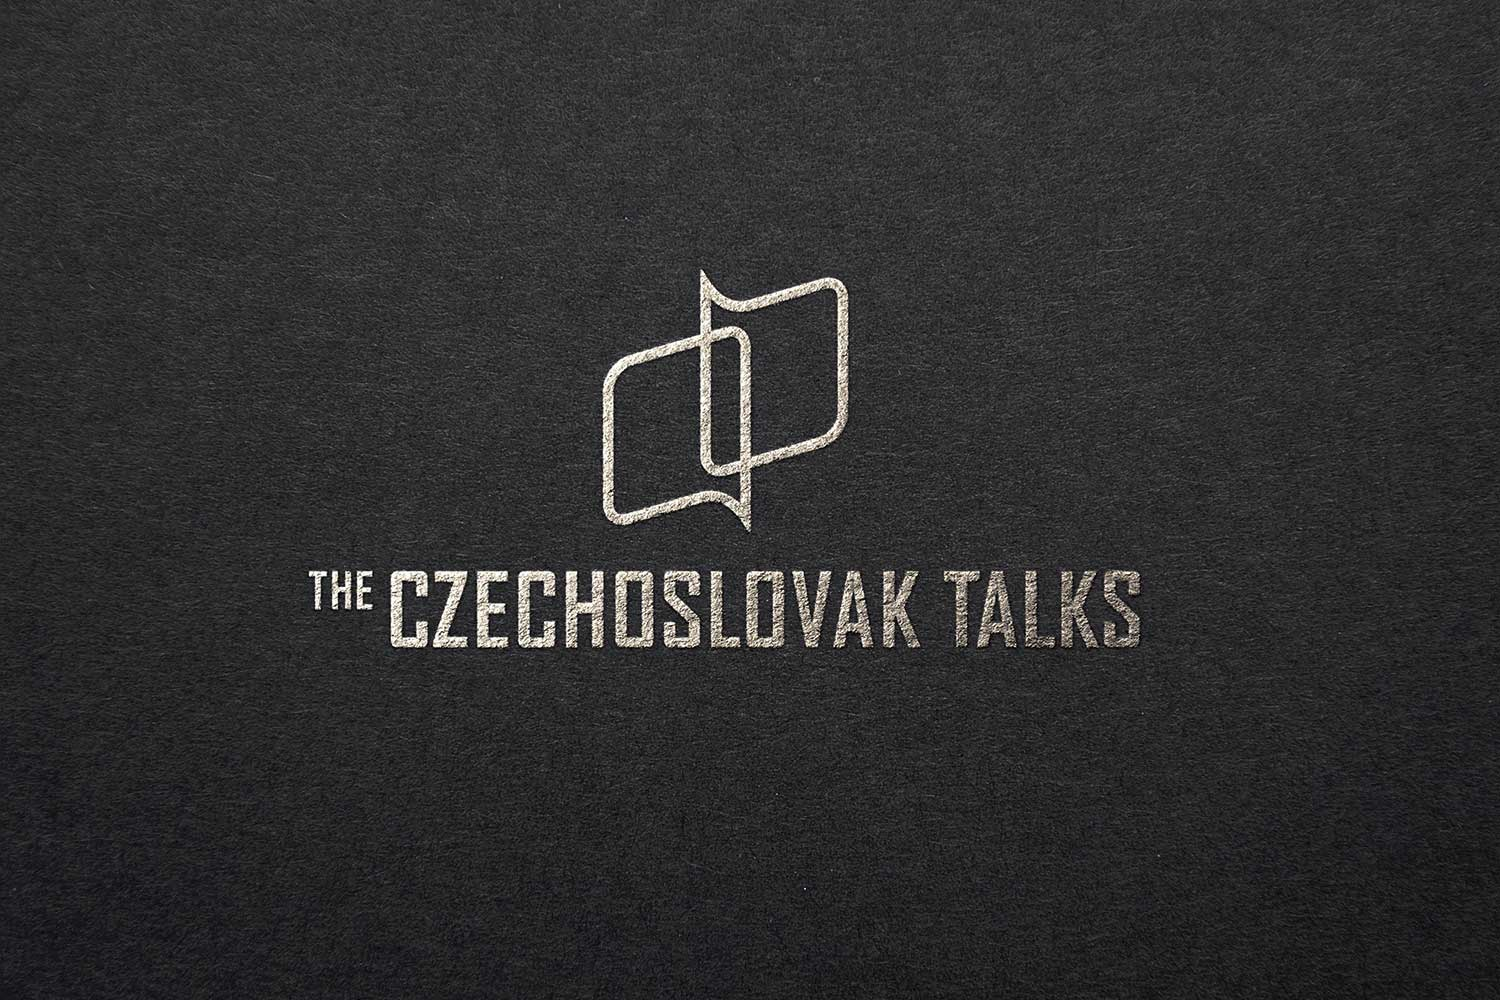 Czechoslovak Talks / Logotyp